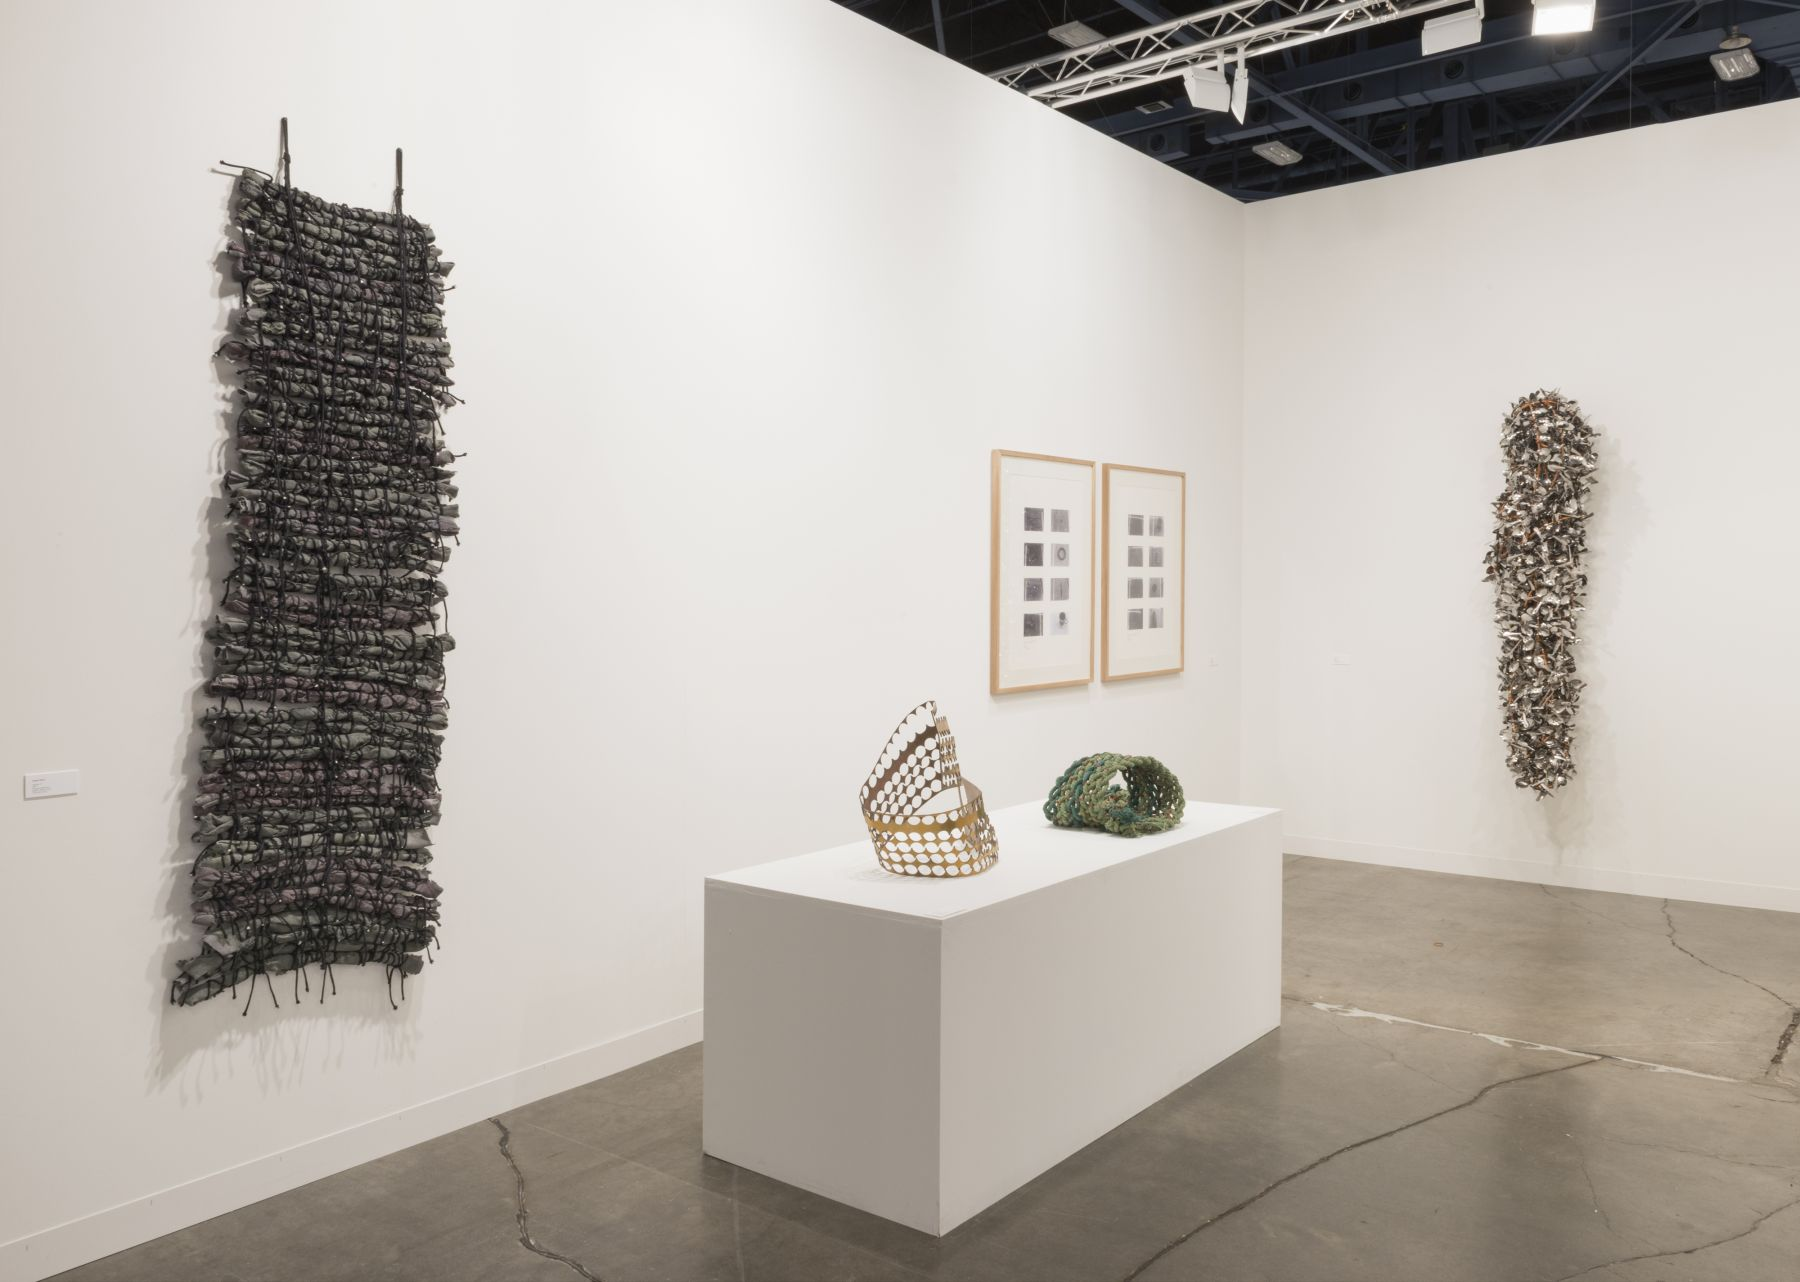 Alexander Gray AssociatesArt Basel Miami Beach 2015Installation view